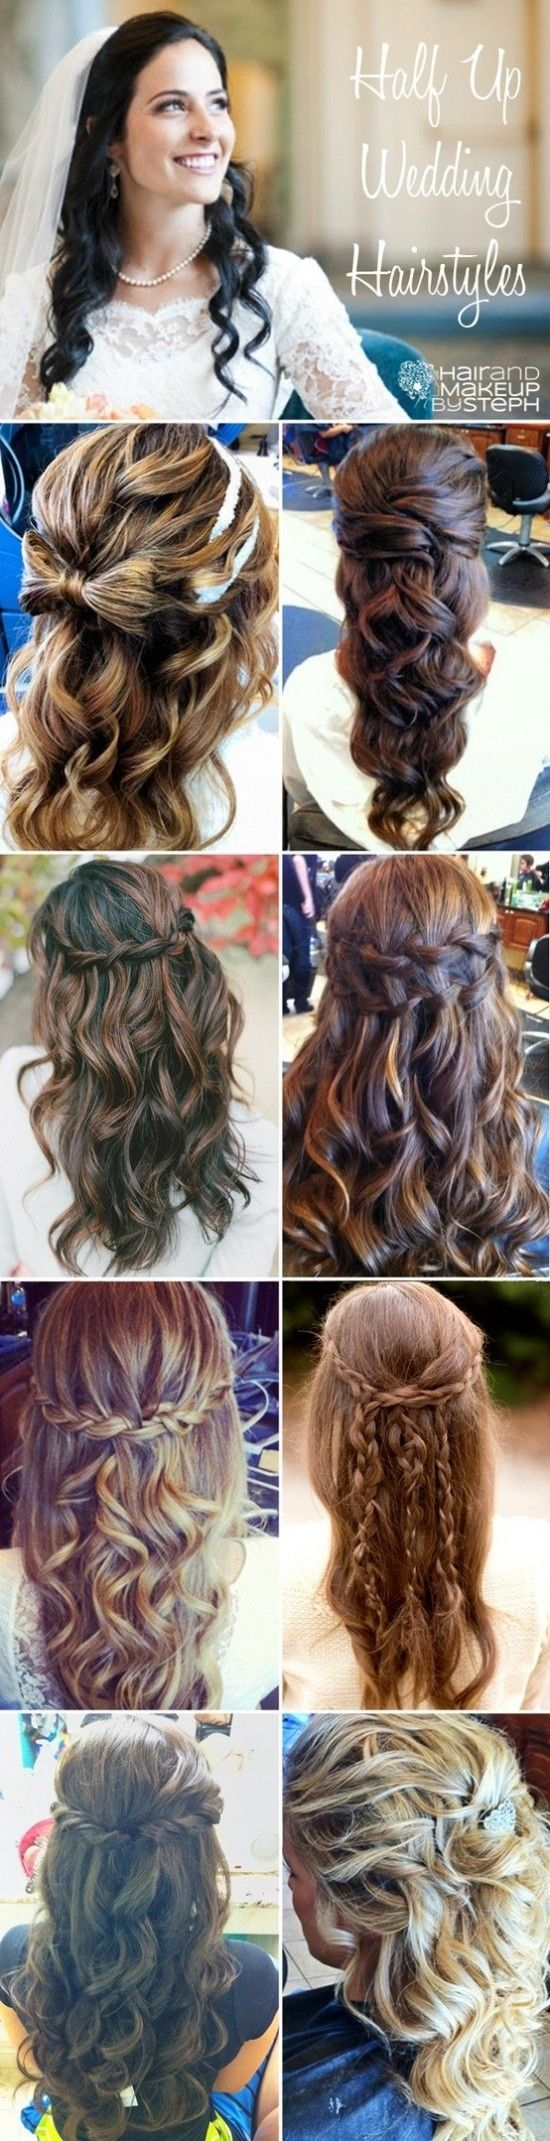 Pin by alecia wright on hair pinterest hair style weddings